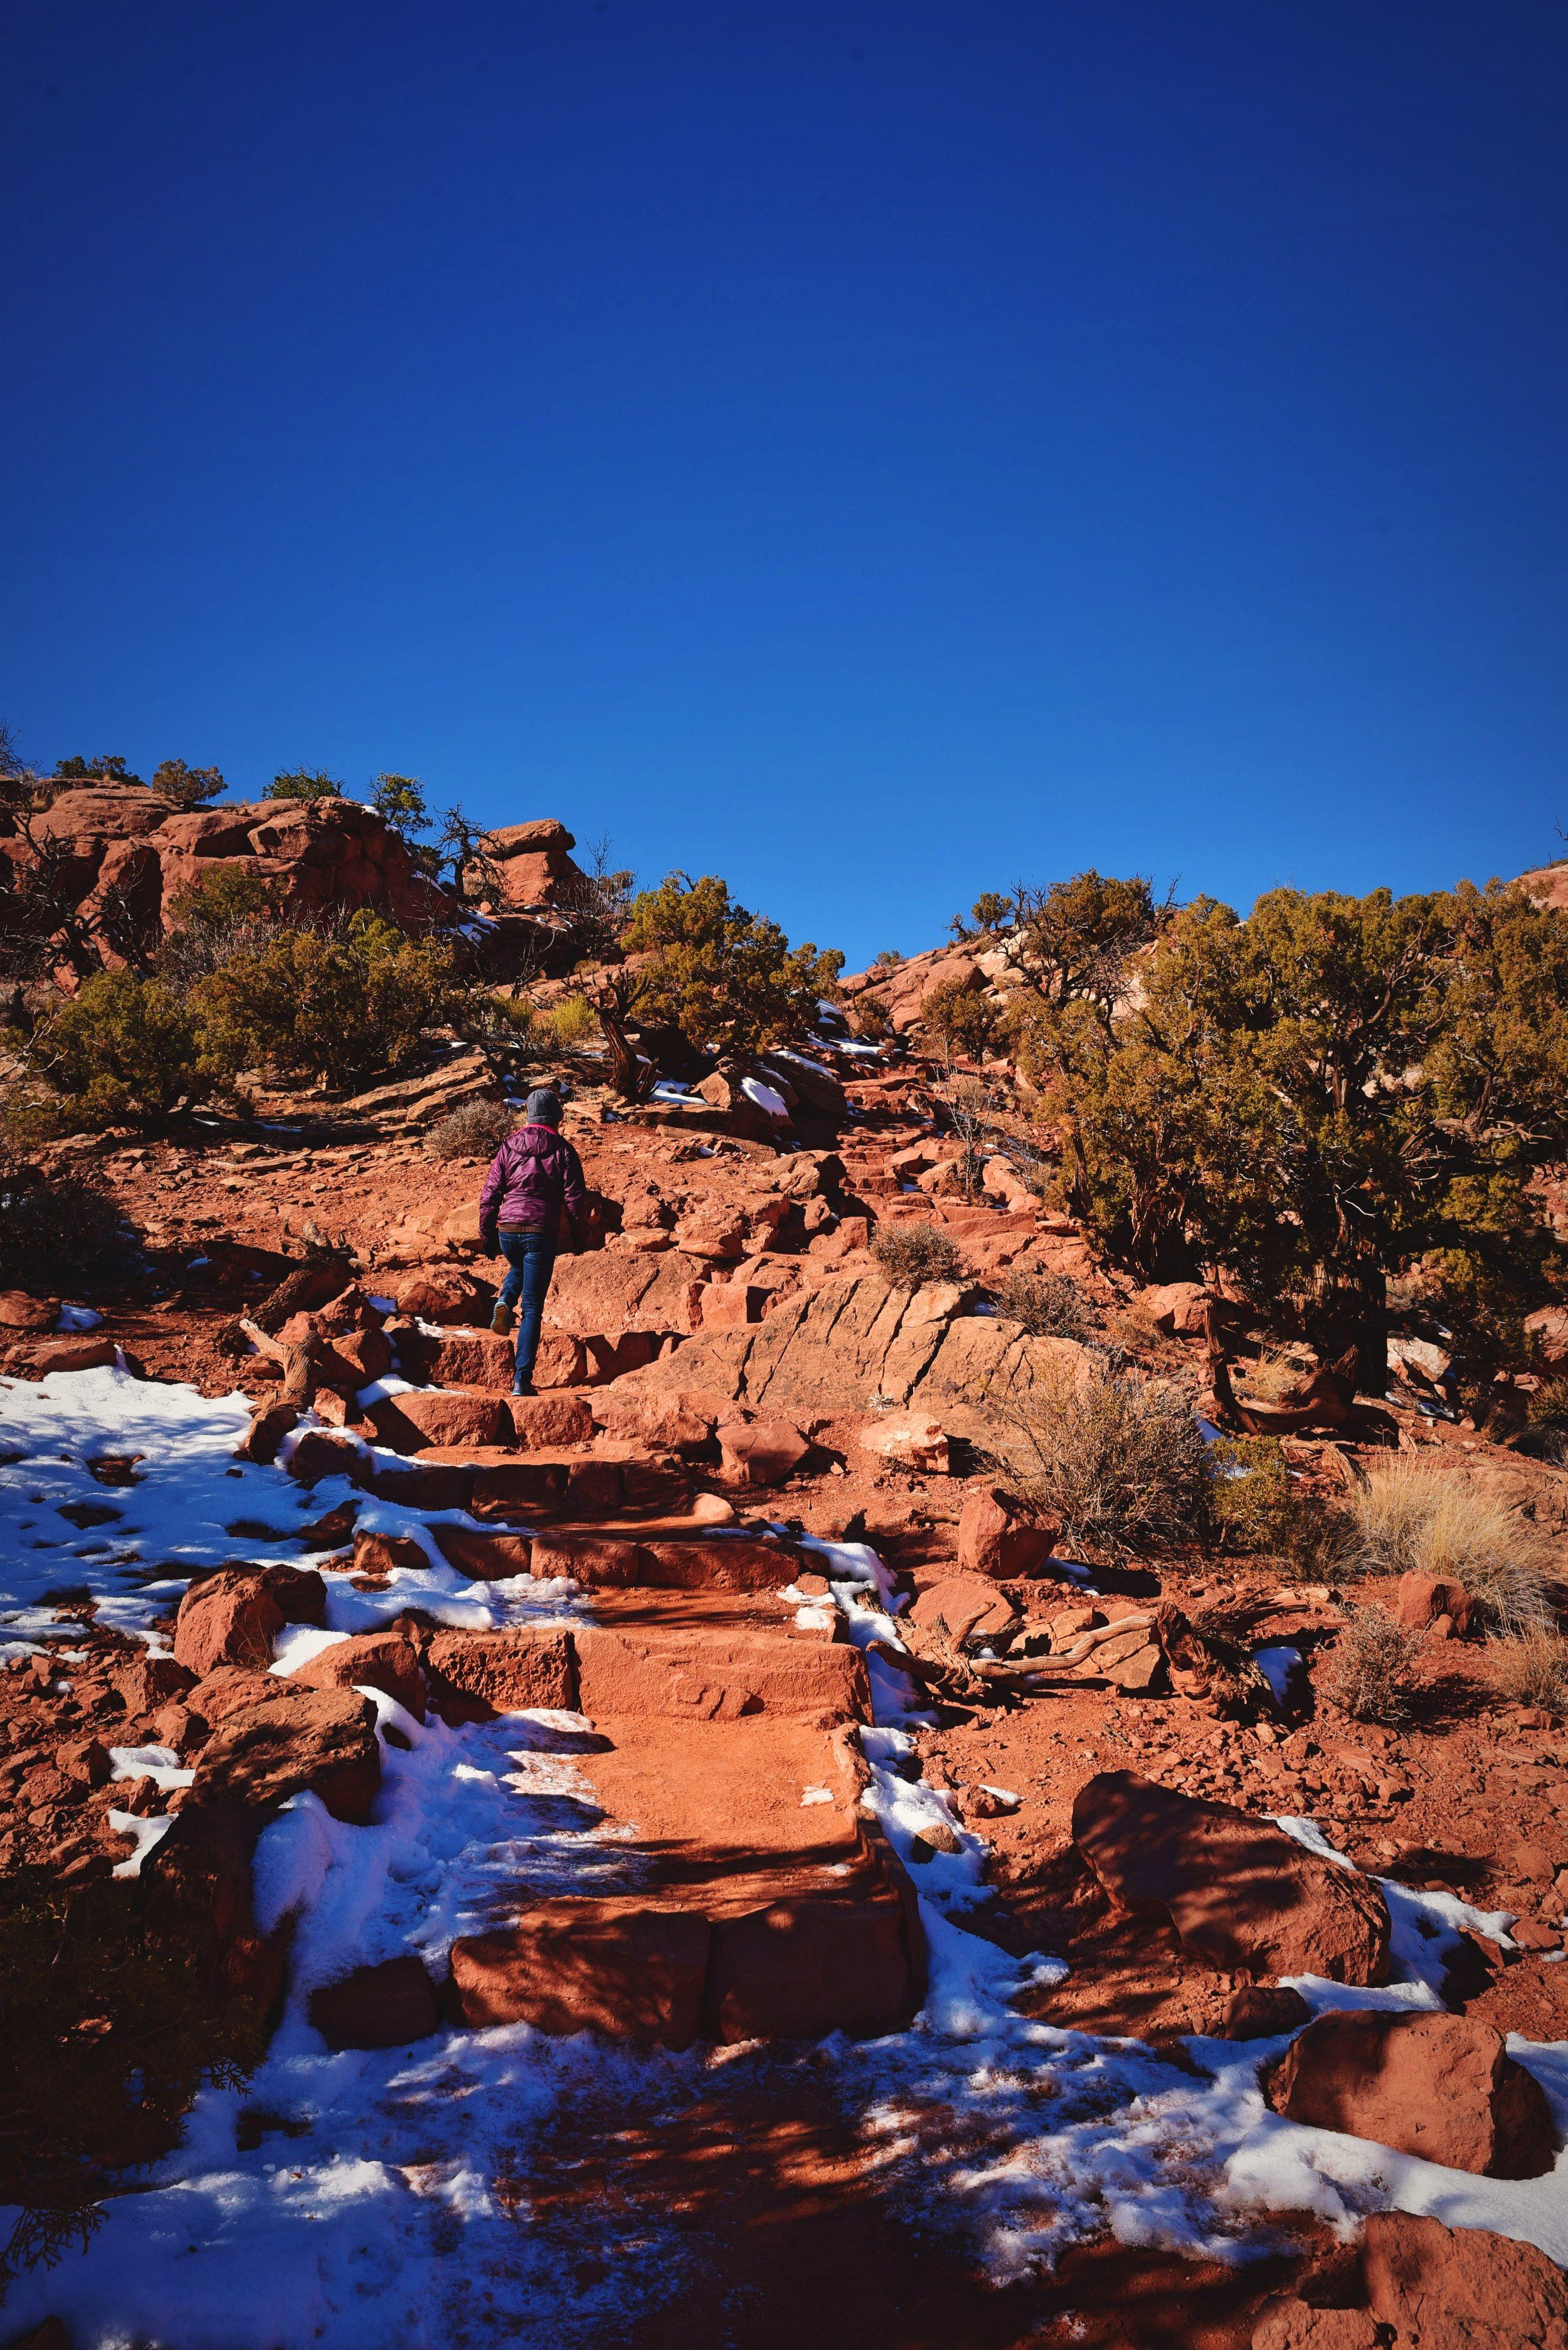 Climbing the steps on the trail to Upheaval Dome.